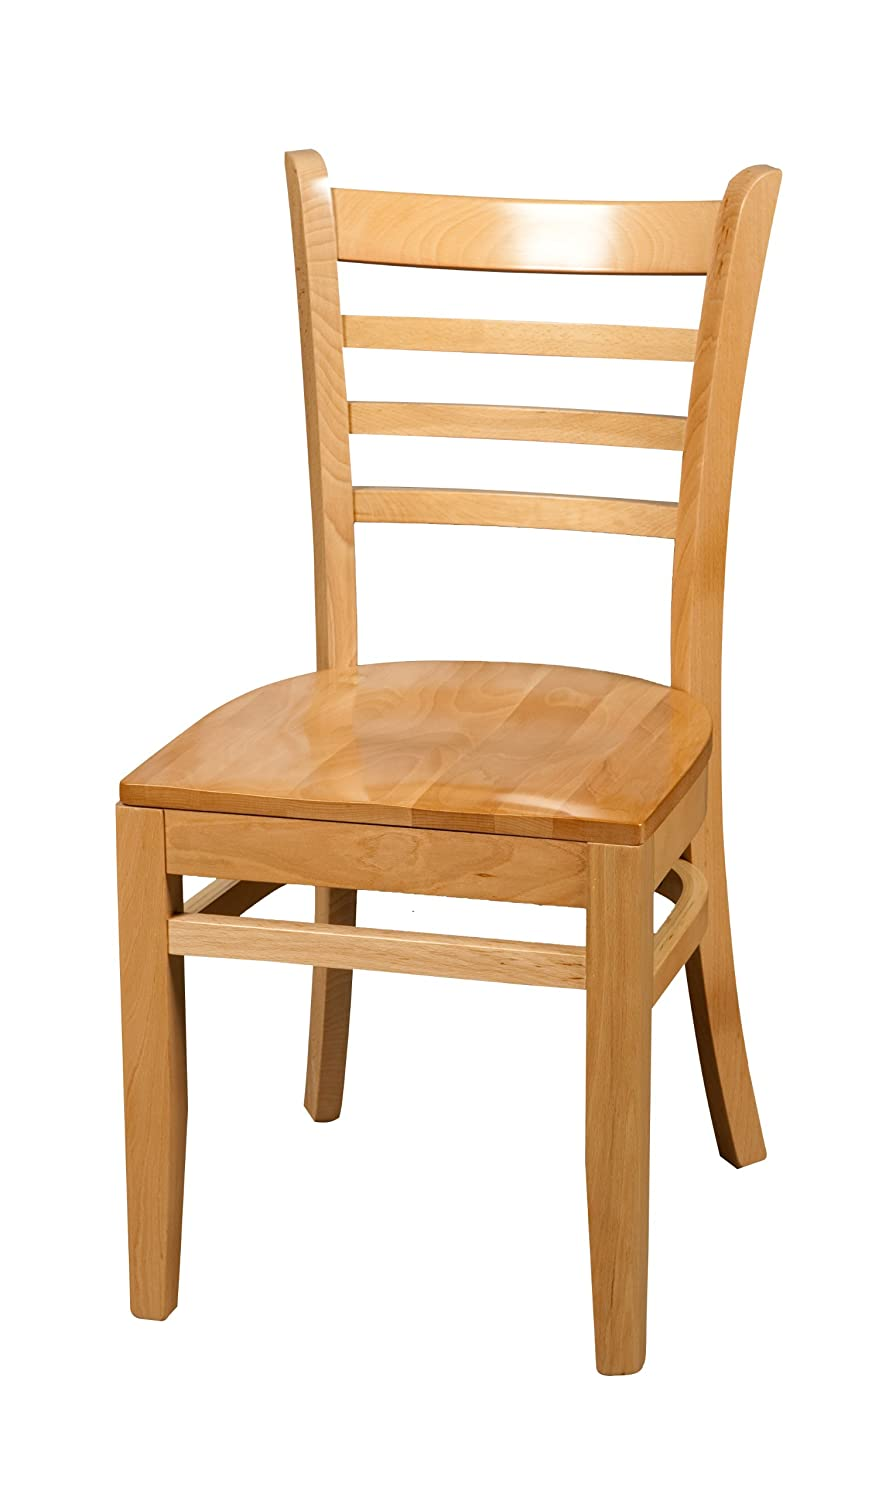 Oak Street Manufacturing WC101NT Solid Natural Wood Frame Ladderback Dining Chair with Natural Wood Seat, 18' Width x 17' Depth 18 Width x 17 Depth